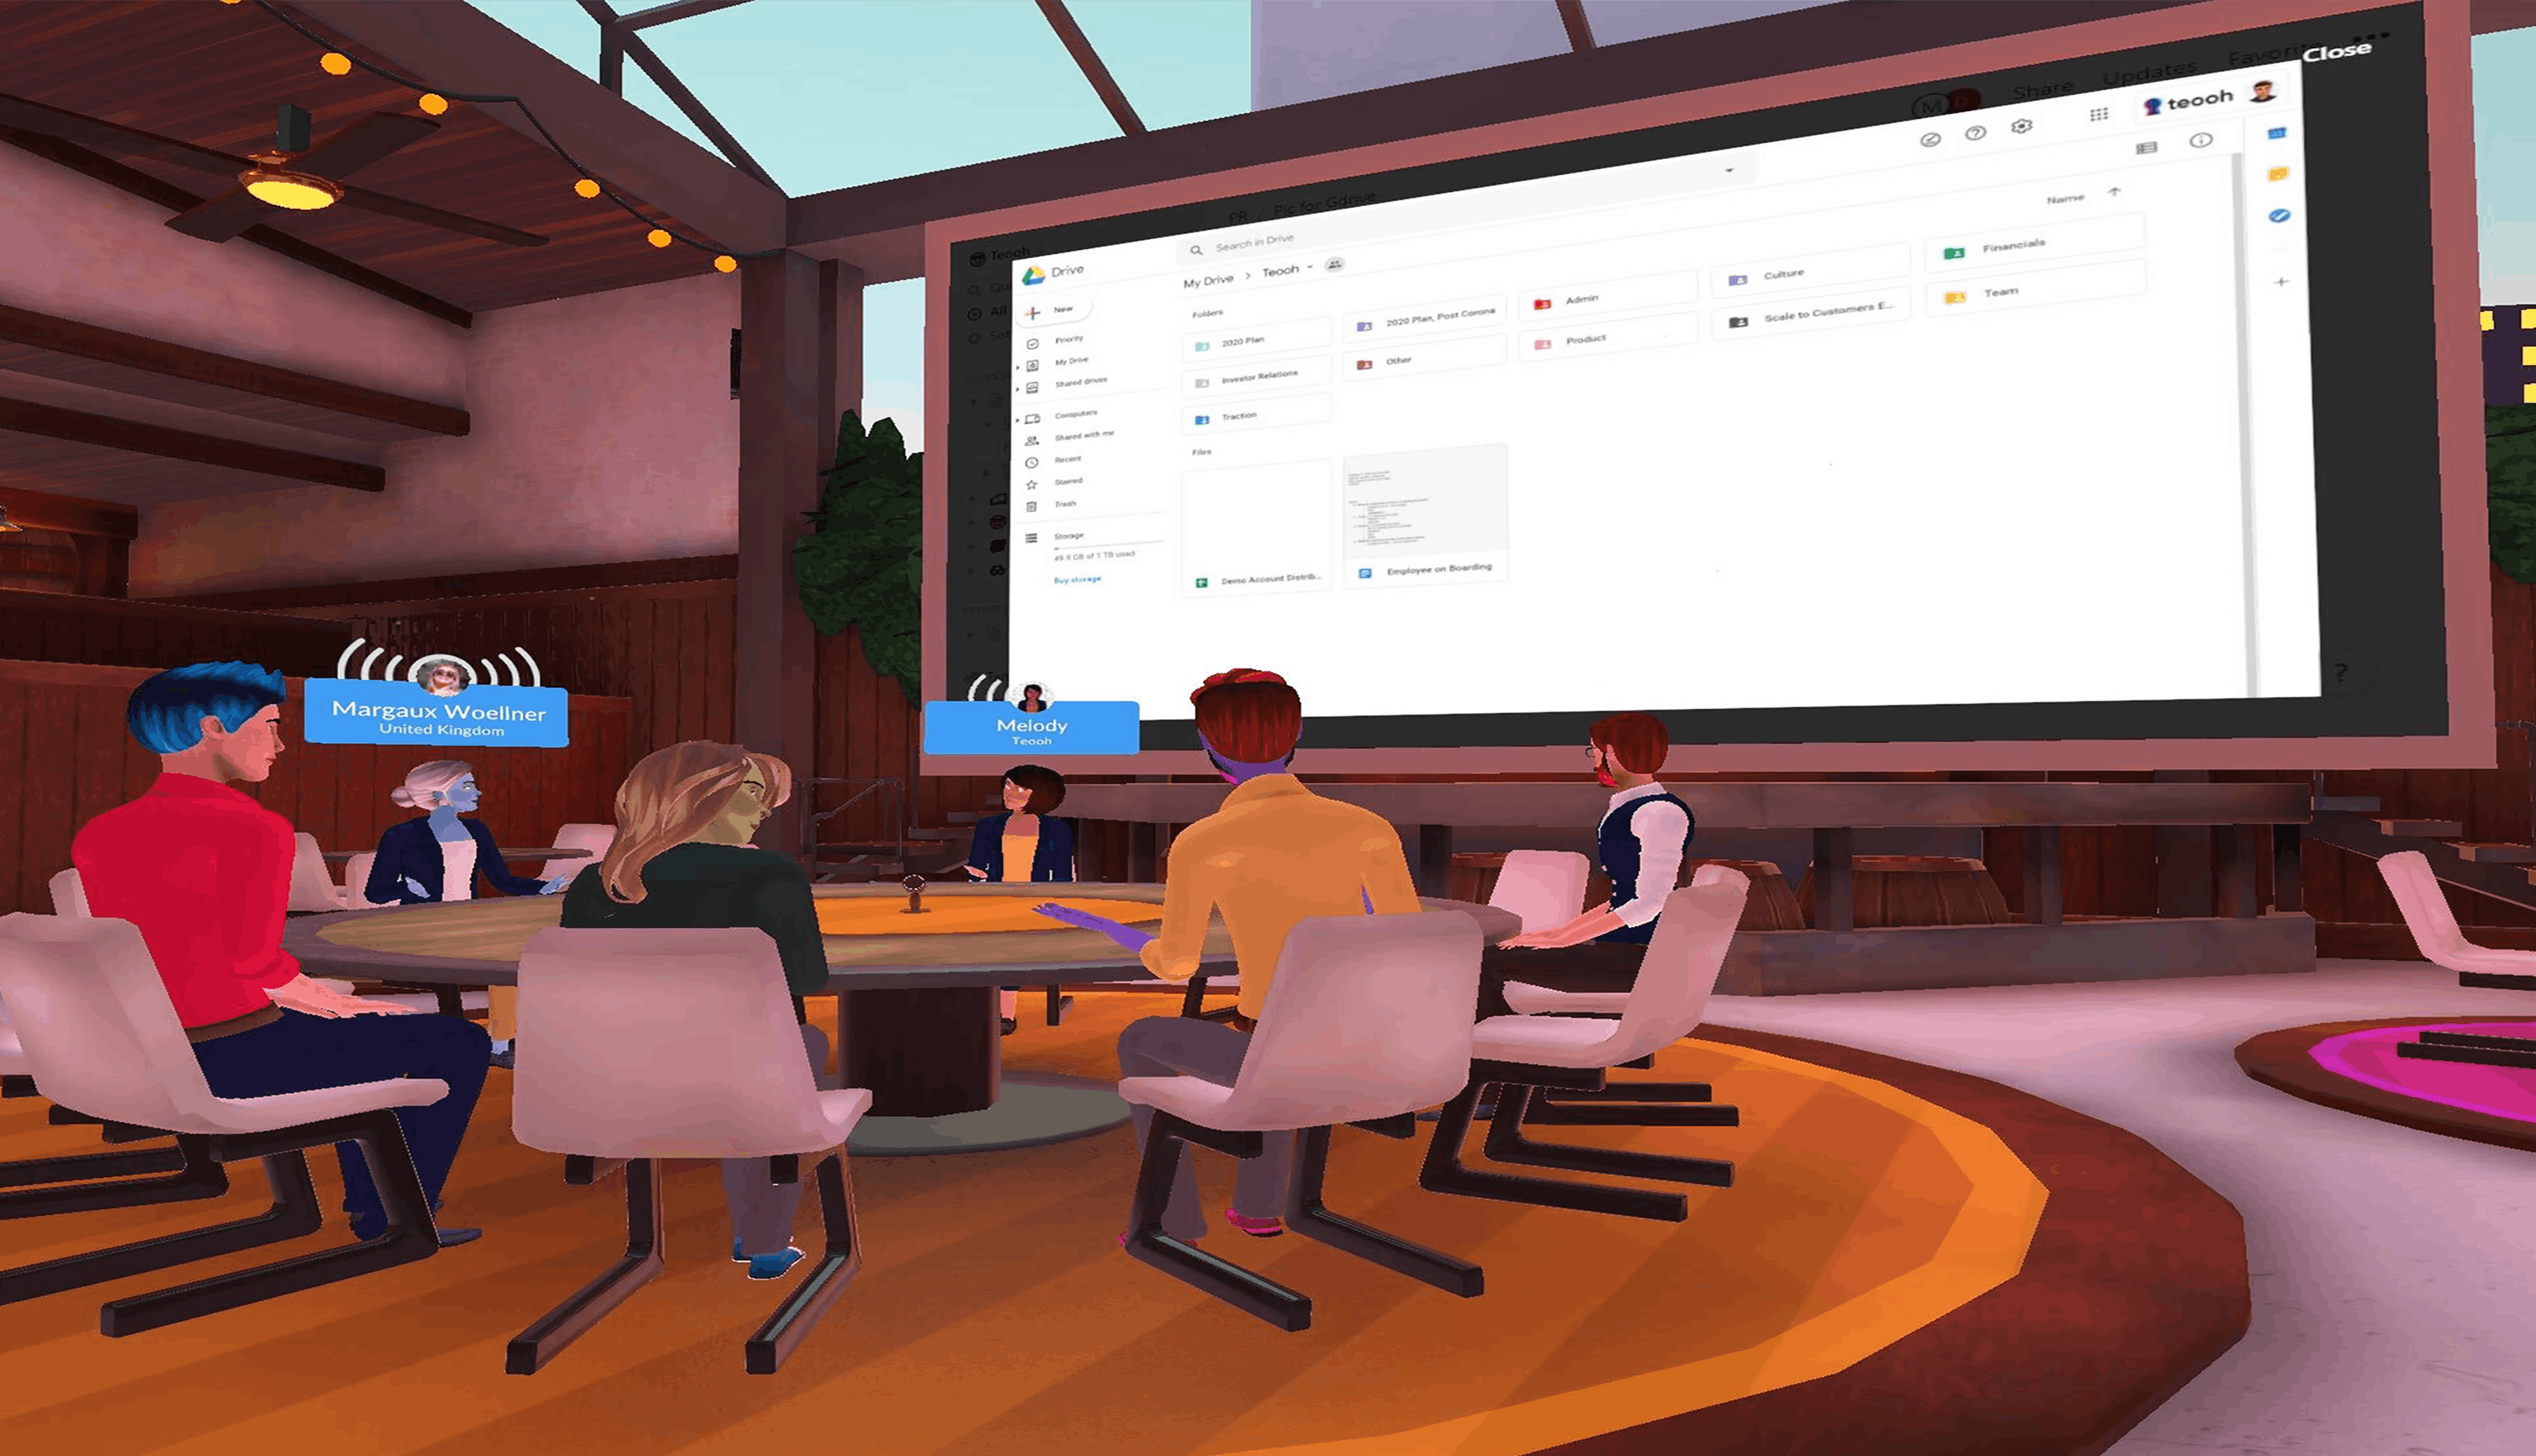 remote company meetings in Teooh's avatar based virtual reality platform